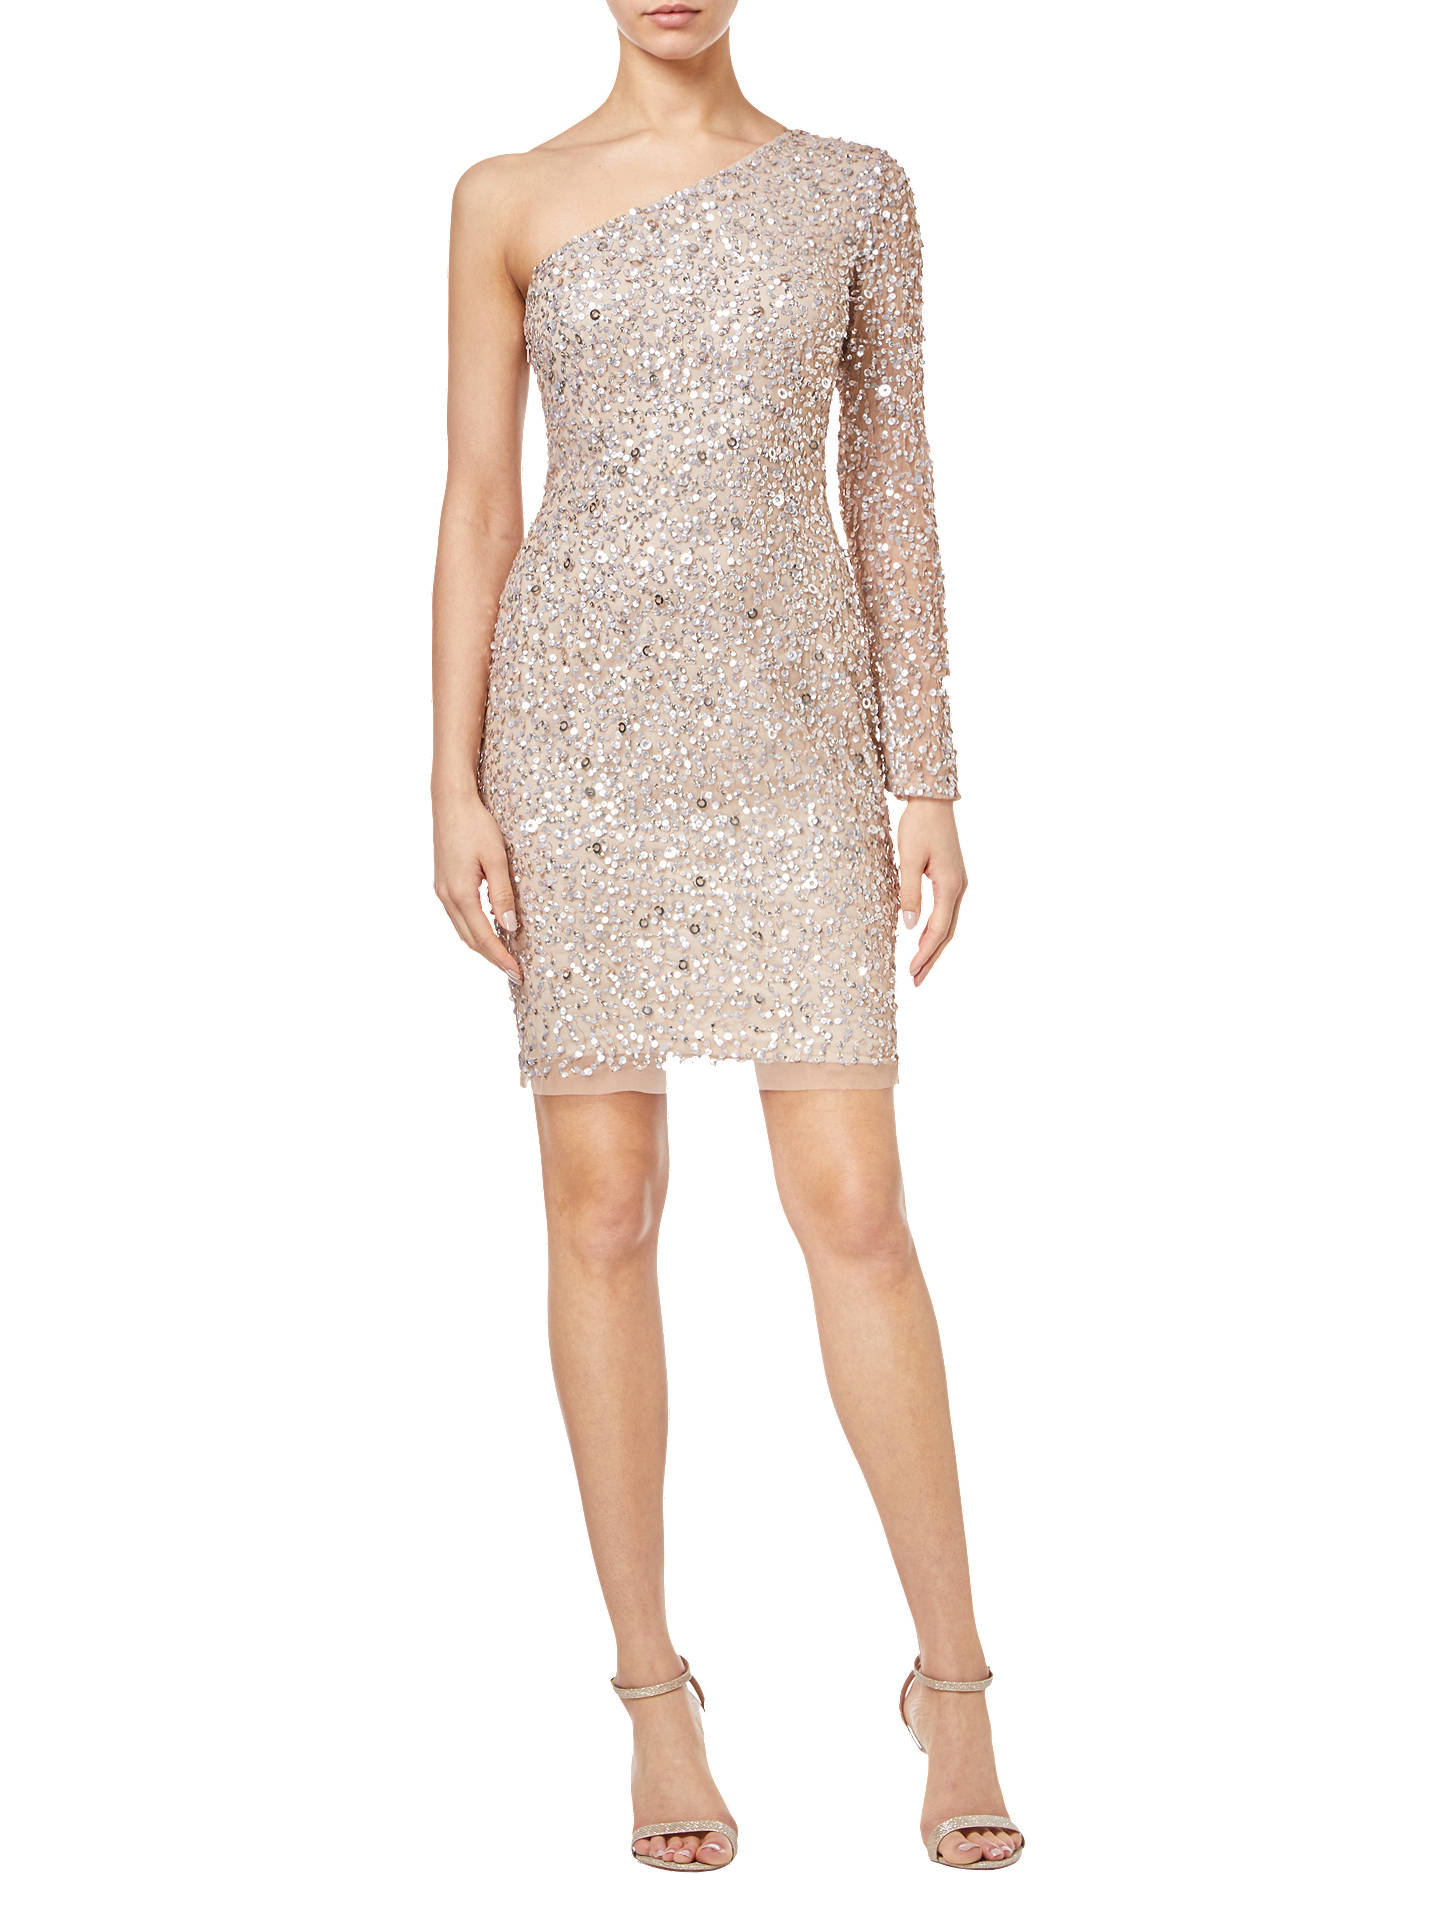 BuyAdrianna Papell Asymmetric Sequin Dress, Champagne, 6 Online at johnlewis.com